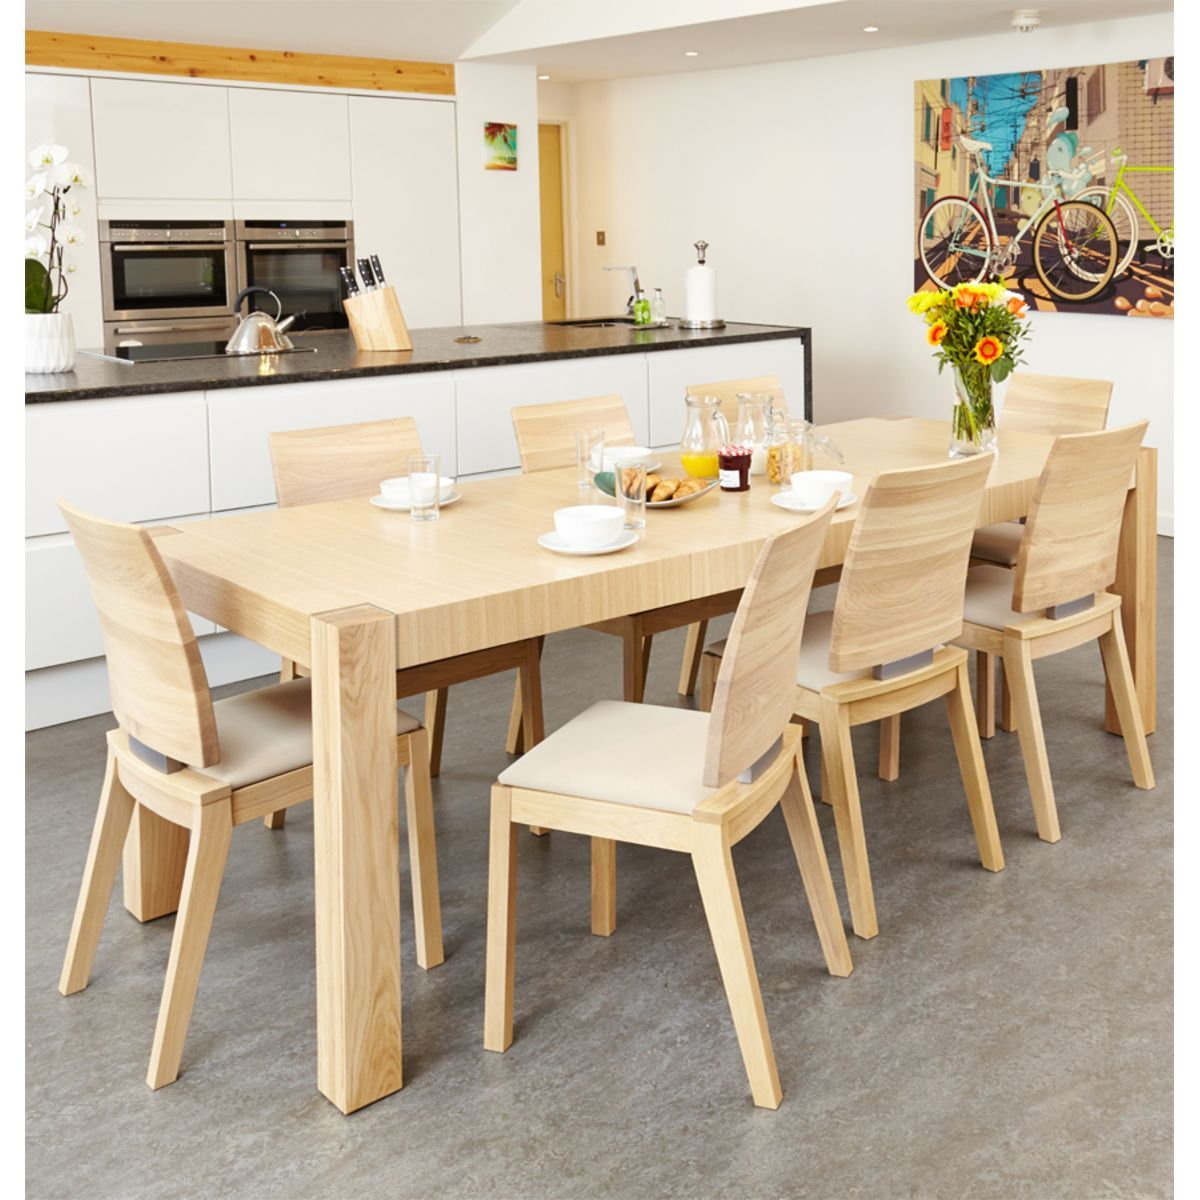 The Olten Light Oak Dining Table And Matching Chairs Would Make A Stunning Addition To Any